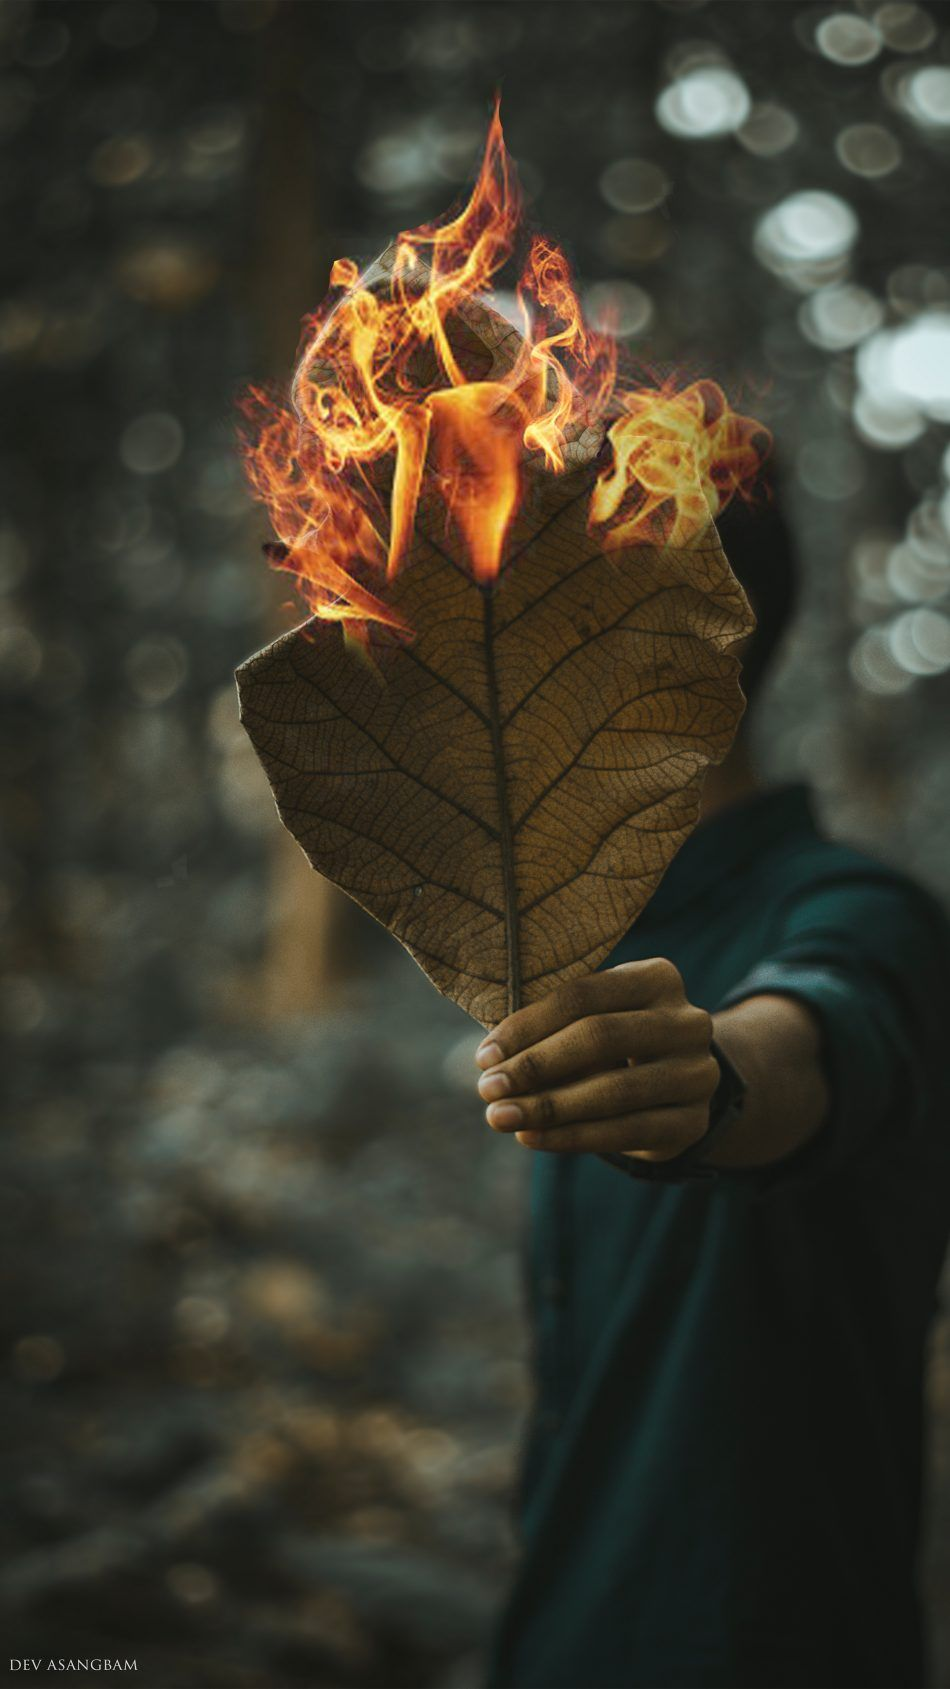 Man Leaves Fire Photography 4k Ultra Hd Mobile Wallpaper Fire Photography Photography 4k Macro Photography Tips